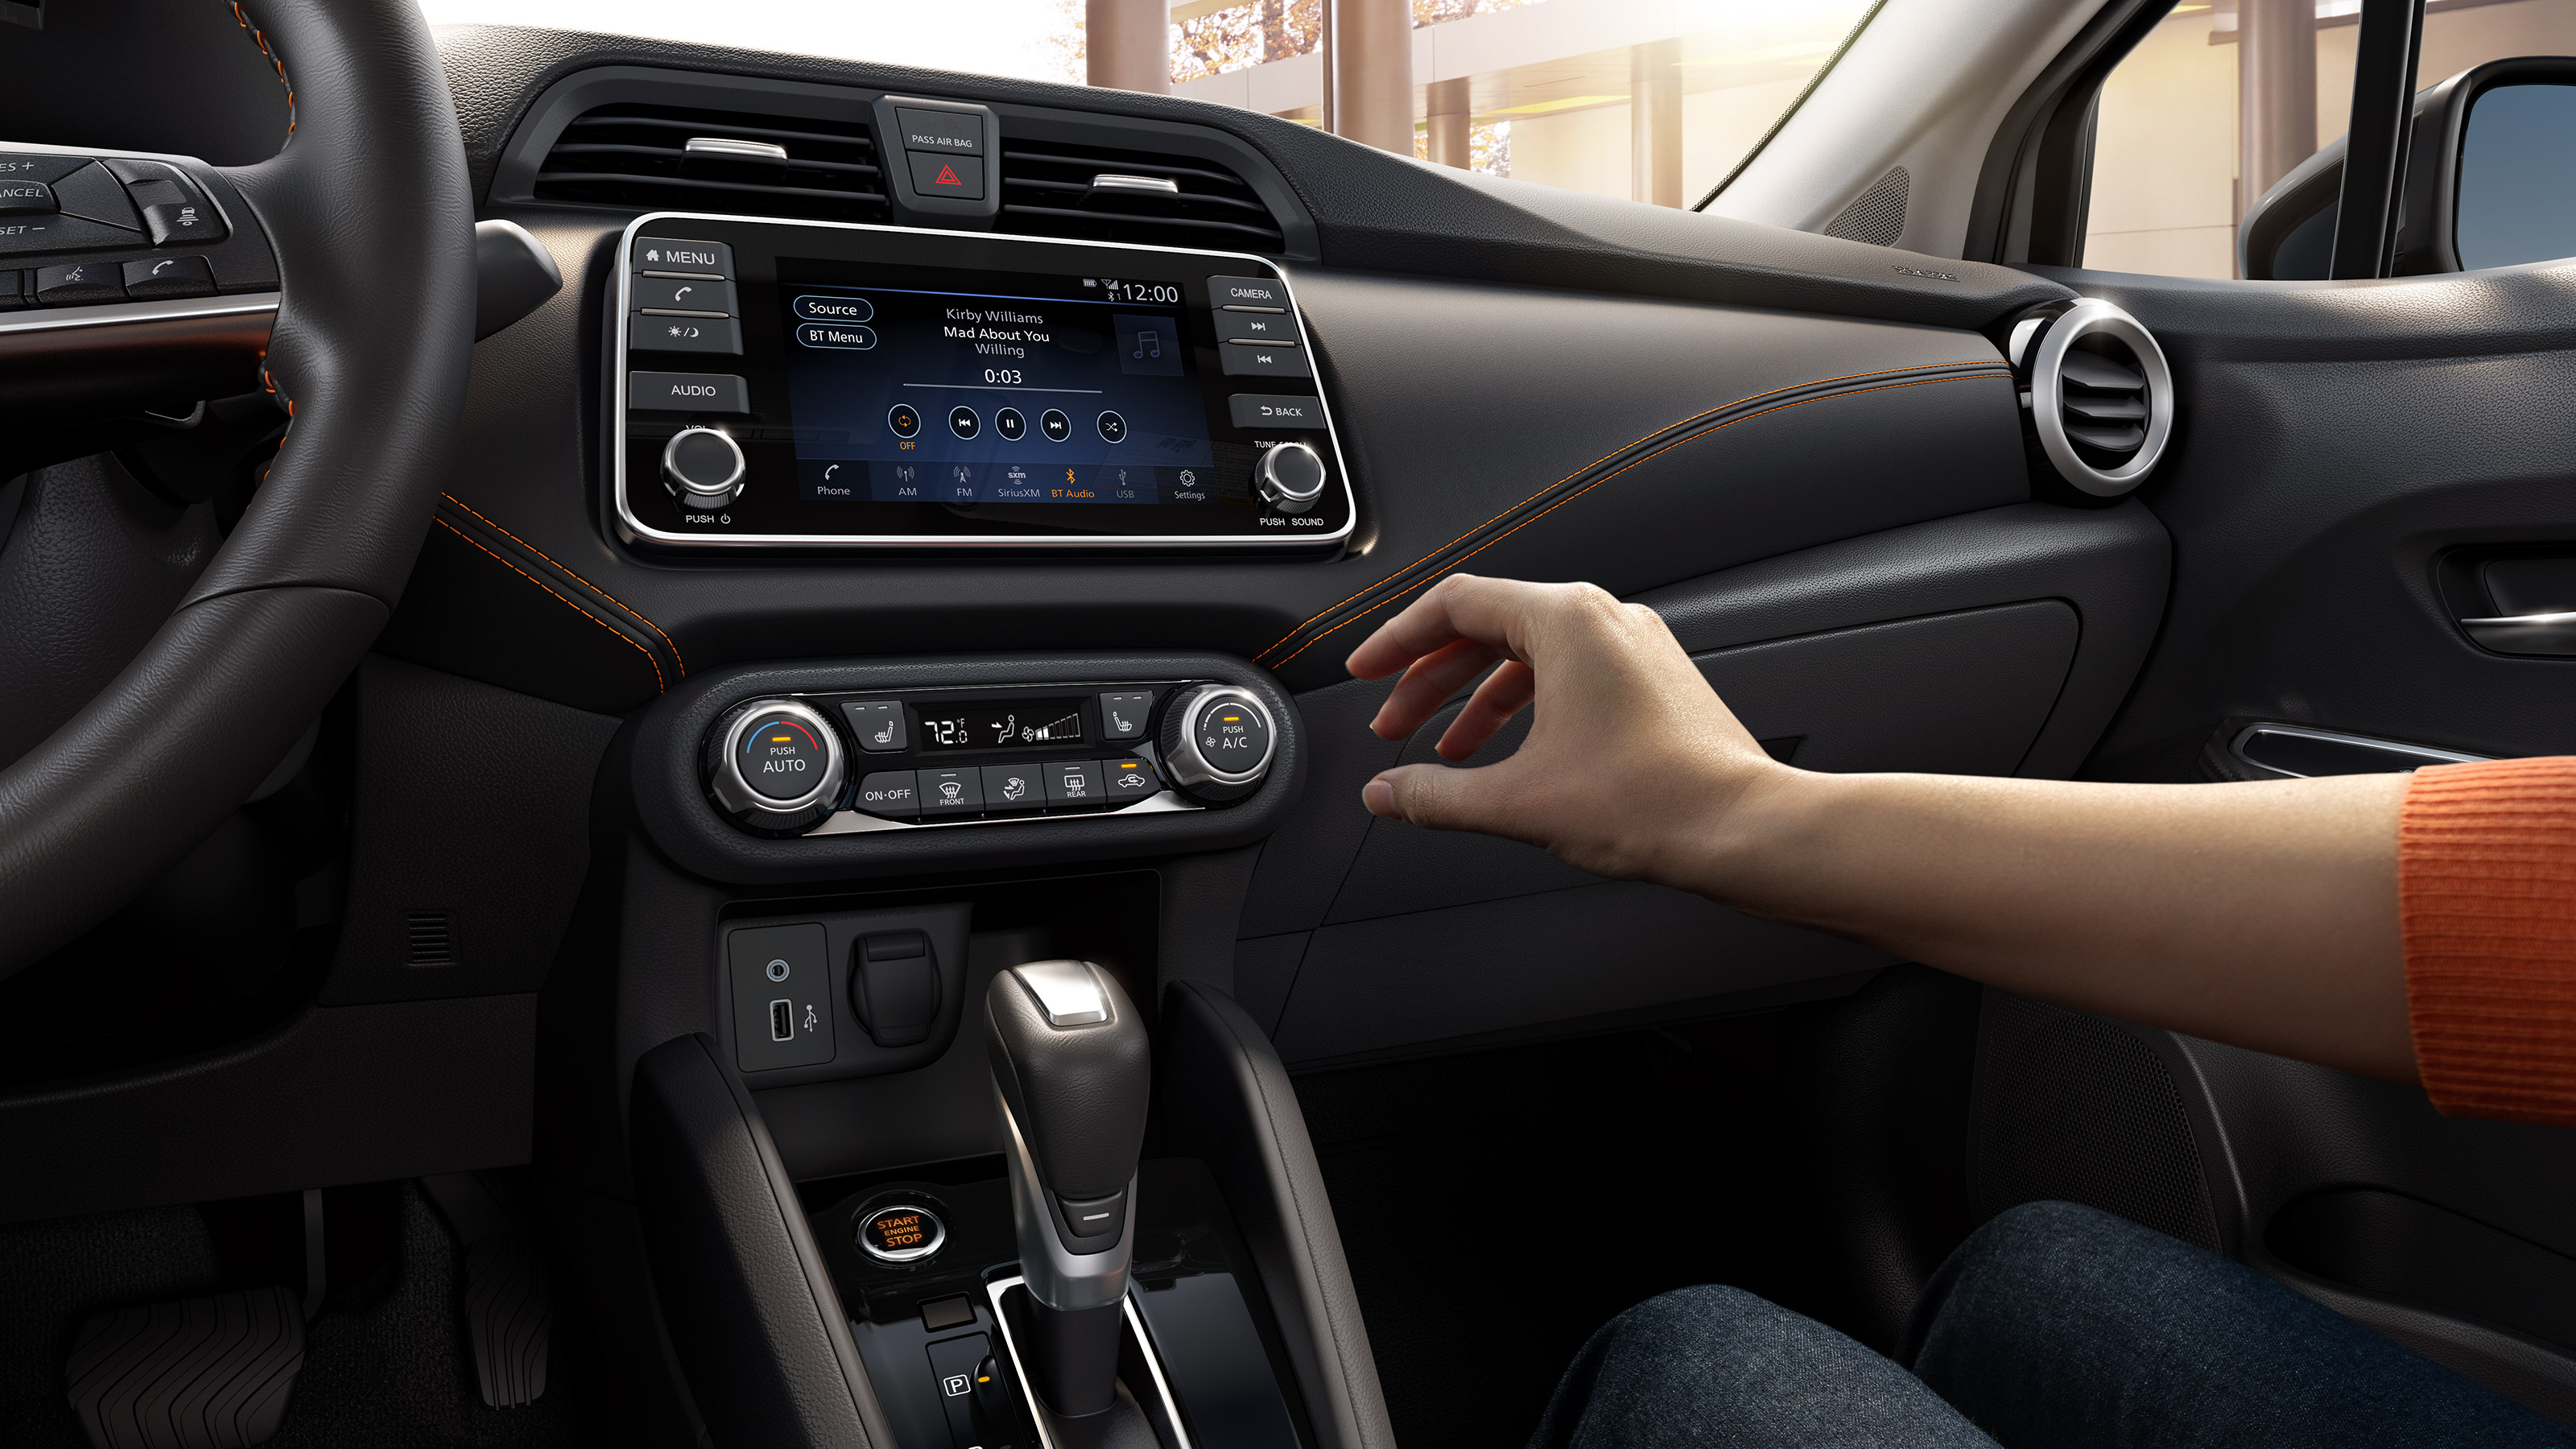 2020 Nissan Versa User-Centric Touchscreen and Controls